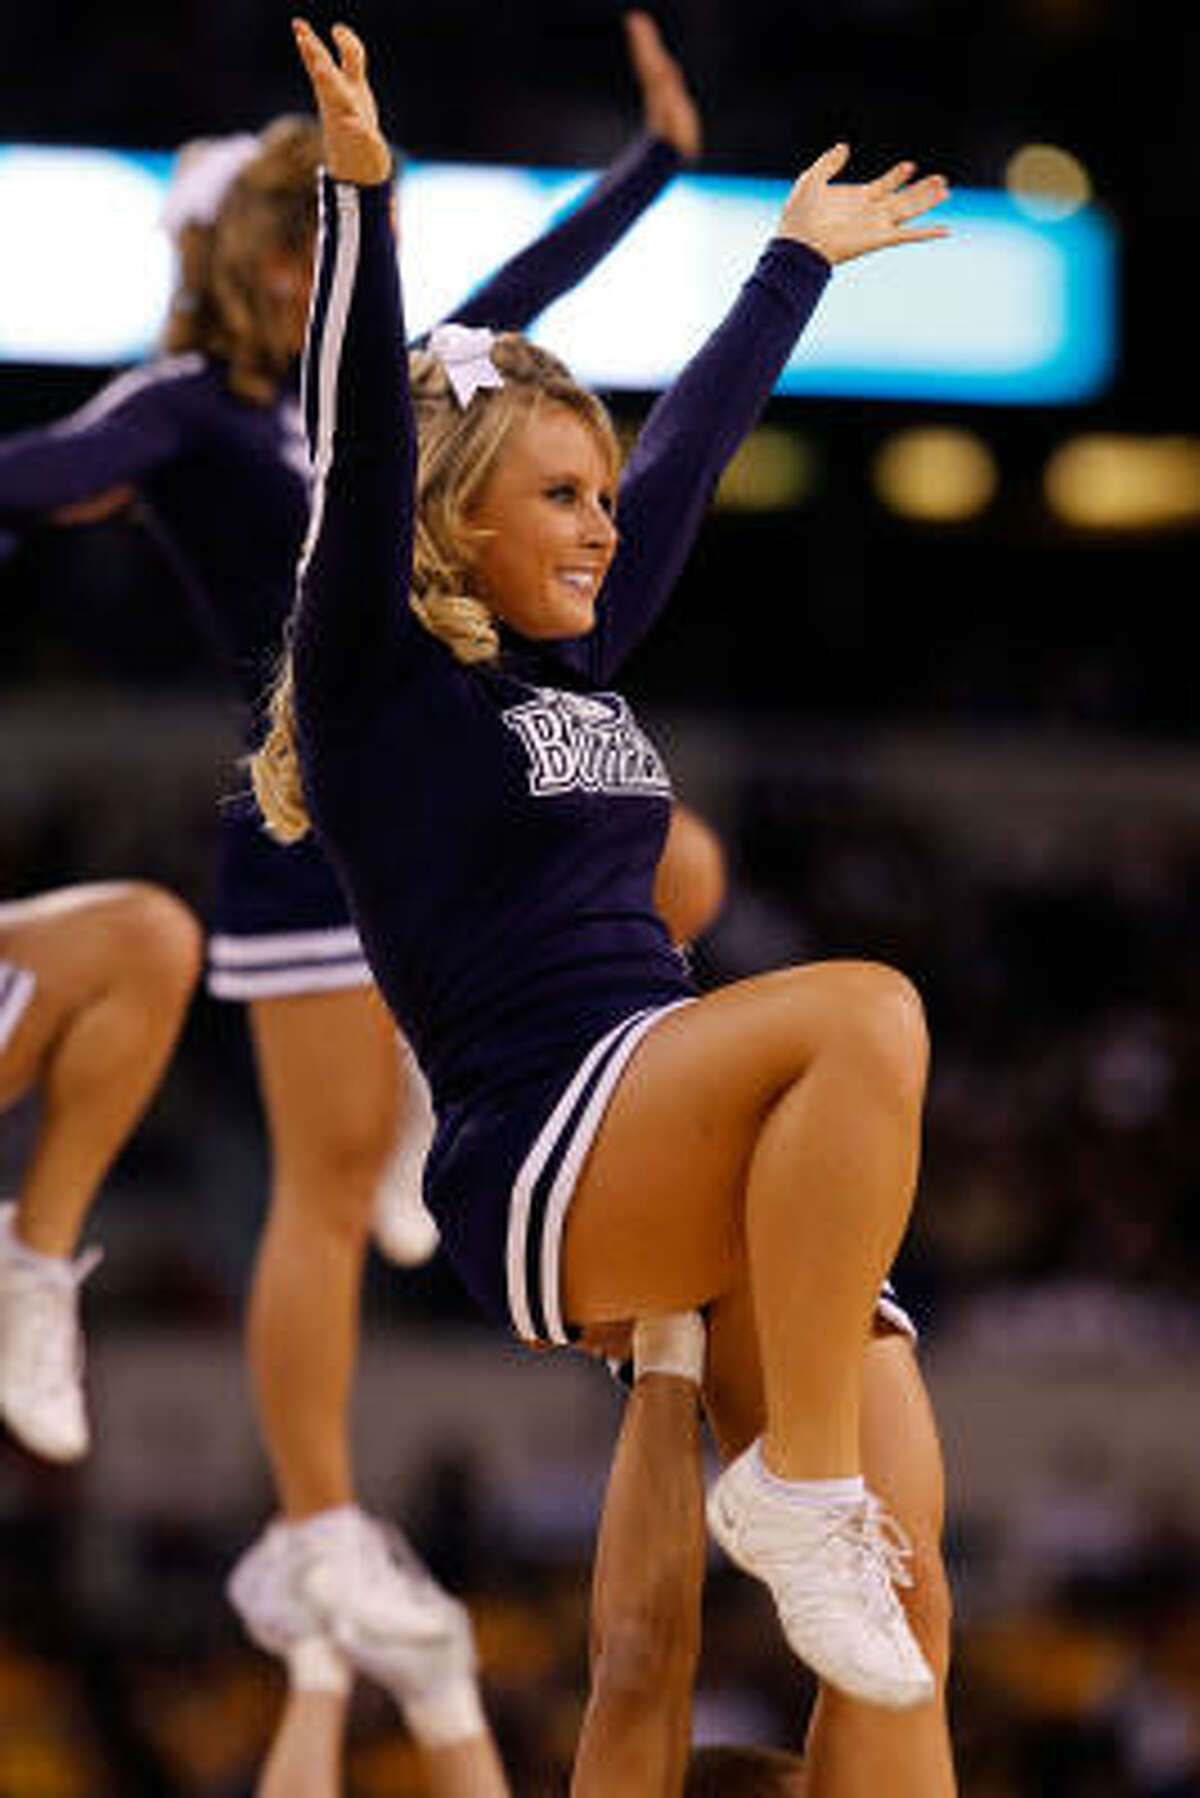 A cheerleader from the Butler Bulldogs performs against the Michigan State Spartans during the Final Four.